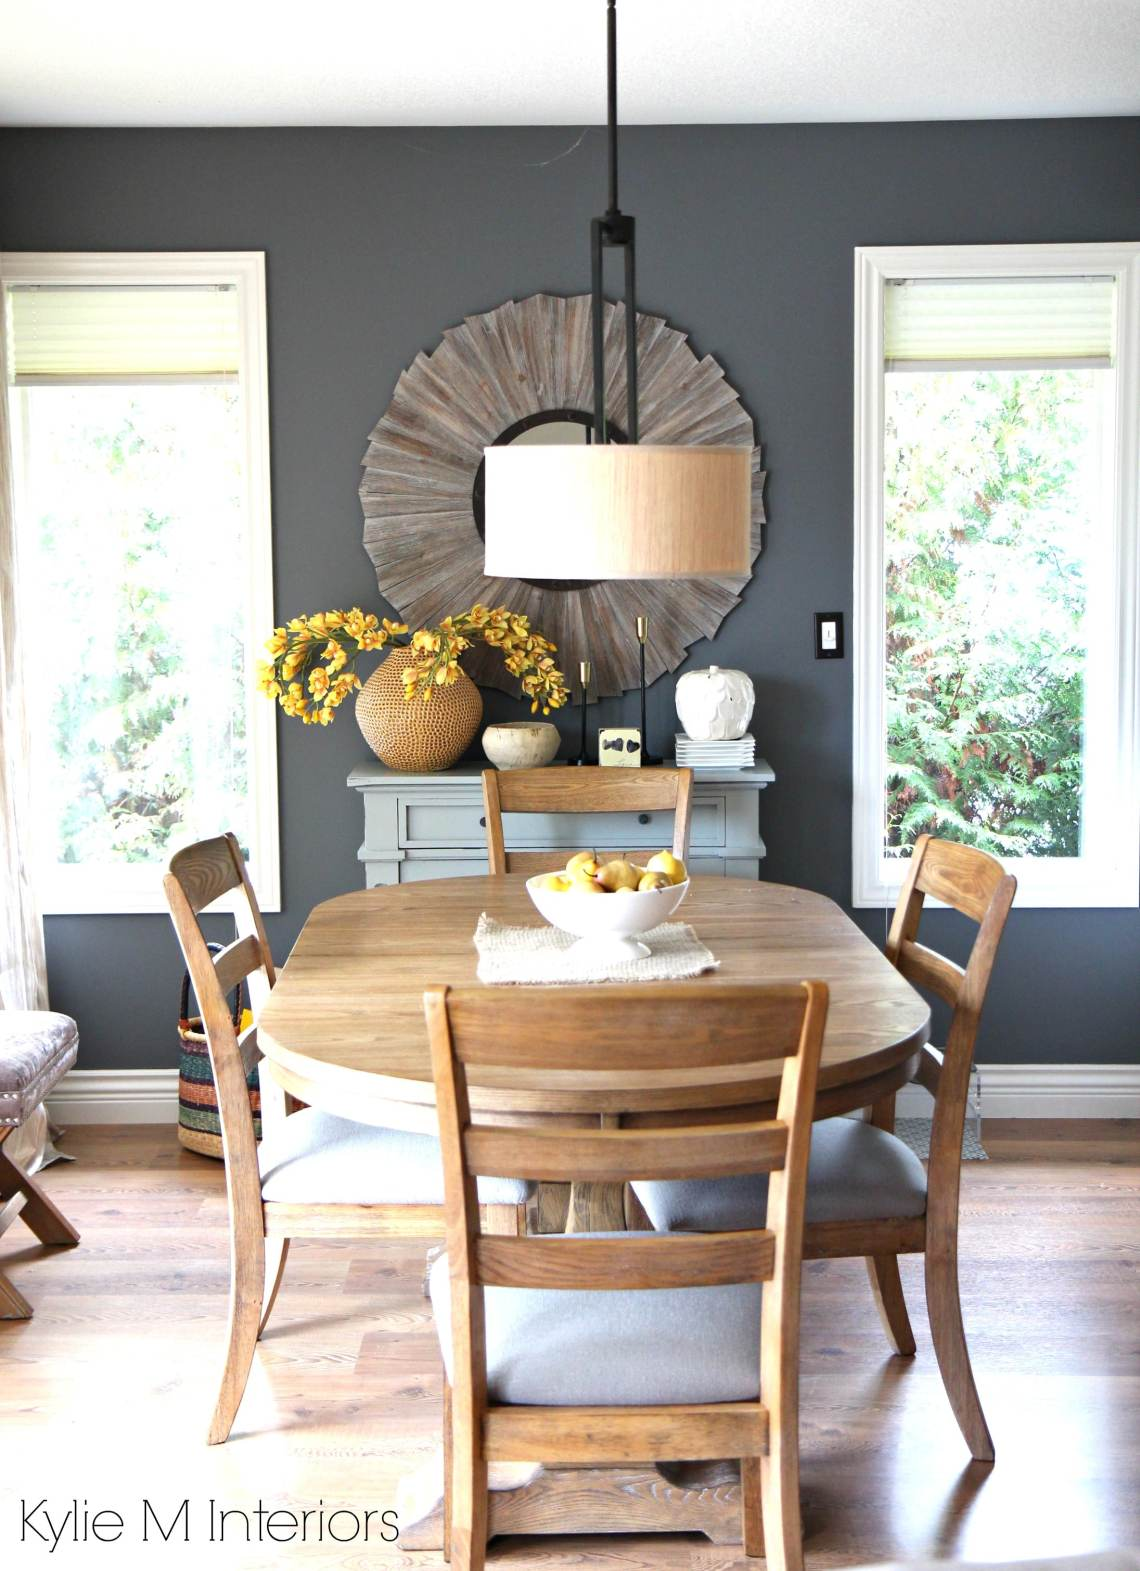 Modern family friendly country farmhouse style dining room ...